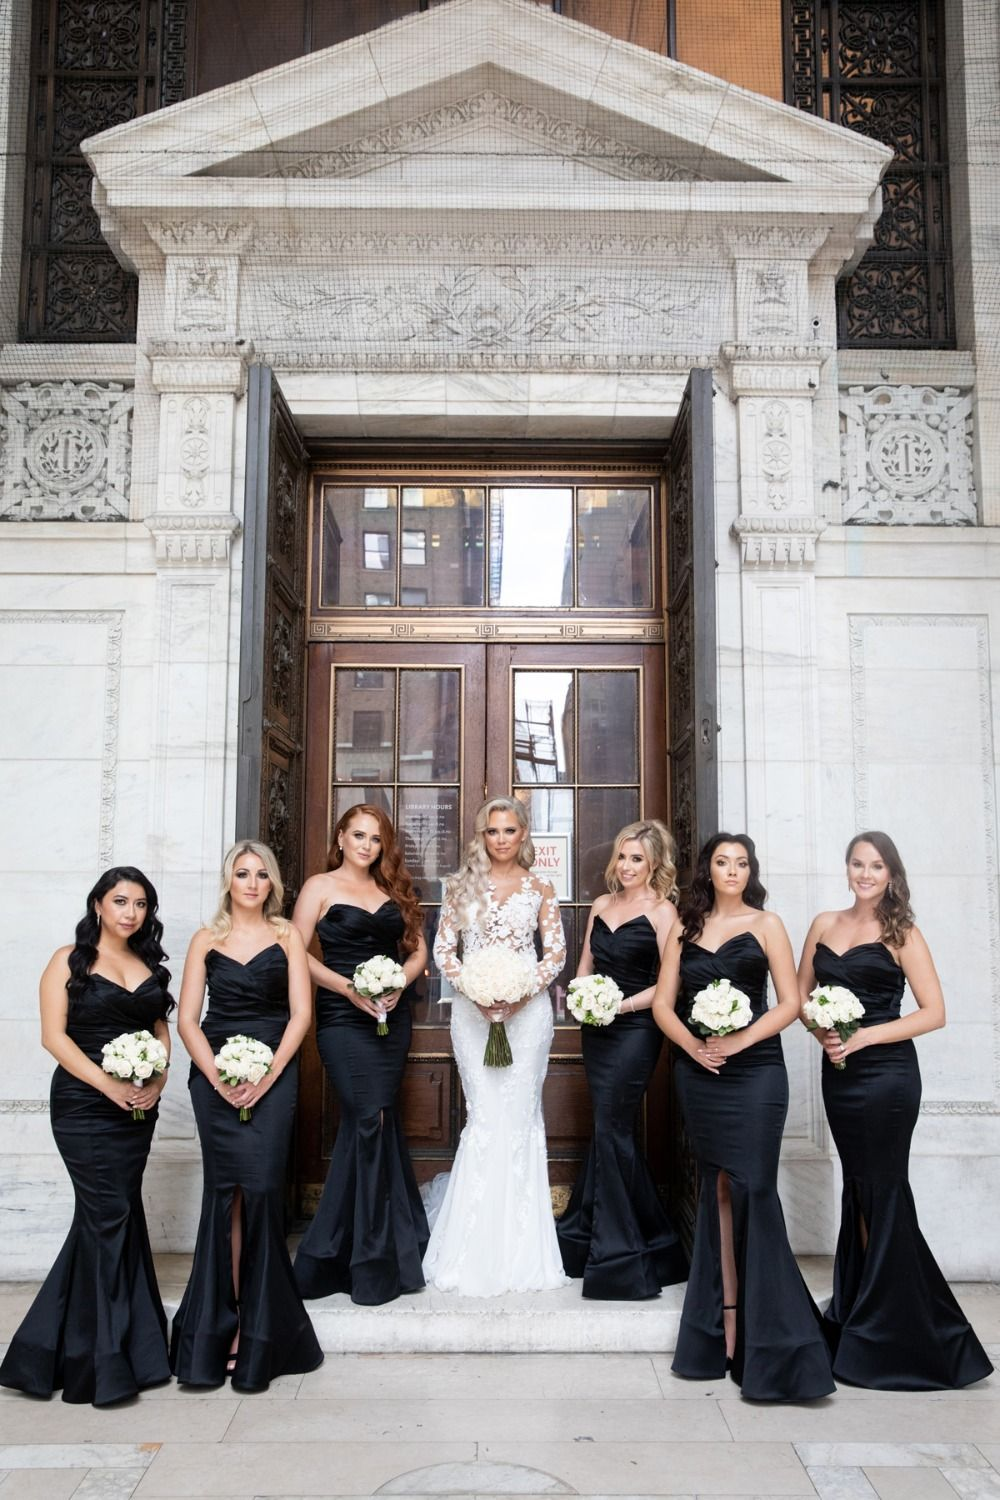 This Gold Black And White Wedding Is Stunning To The Max In 2020 Black And White Wedding Theme White Wedding Theme Black Wedding Decorations